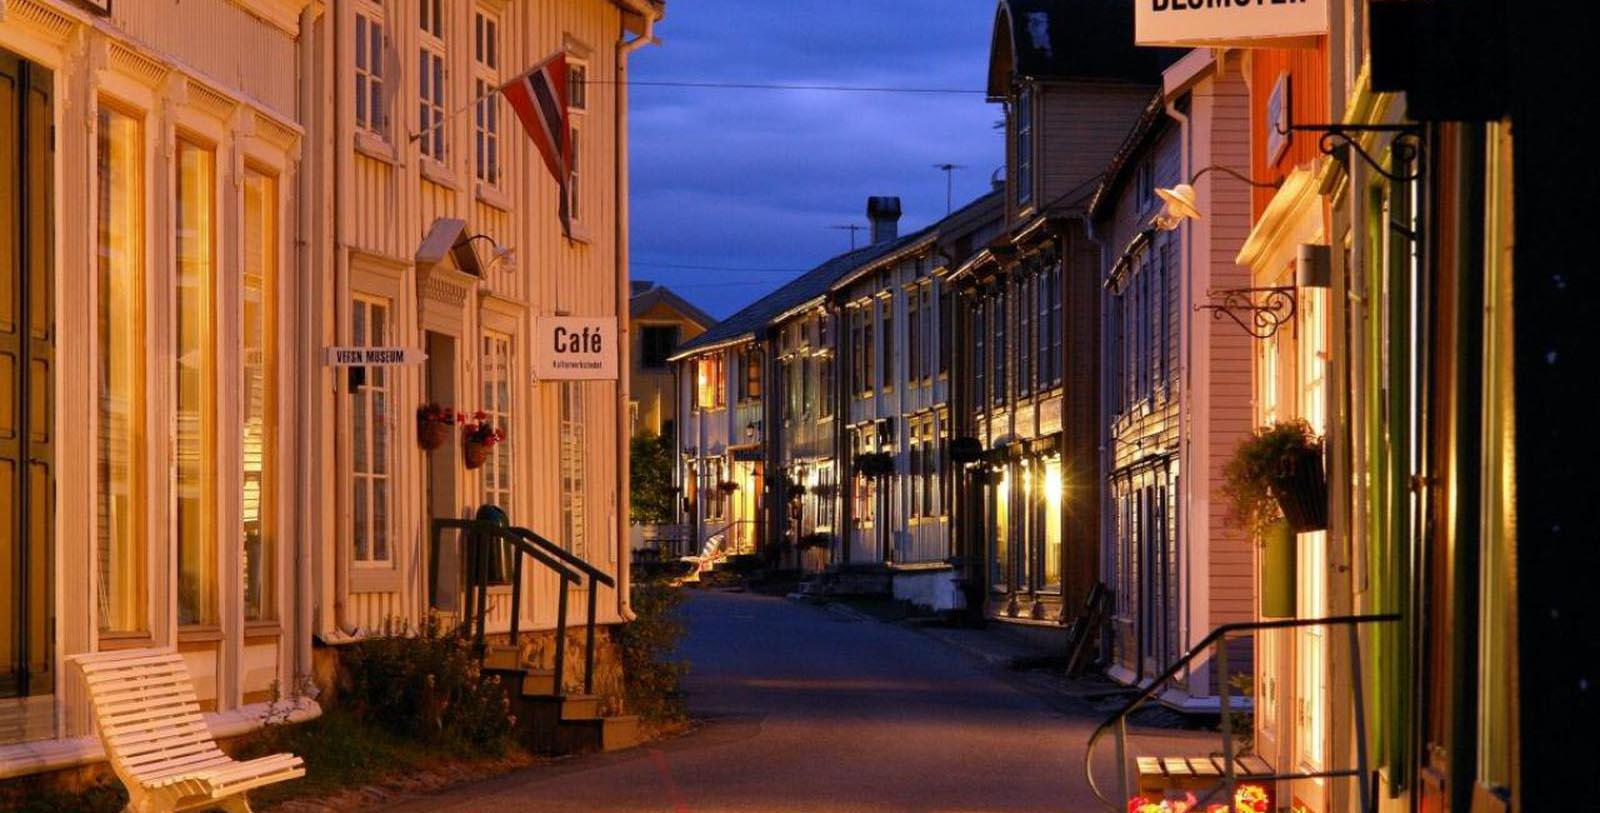 Image of Exterior and Street, Fru Haugans Hotel, Mosjoen, Norway, 1794, Member of Historic Hotels Worldwide, Discover